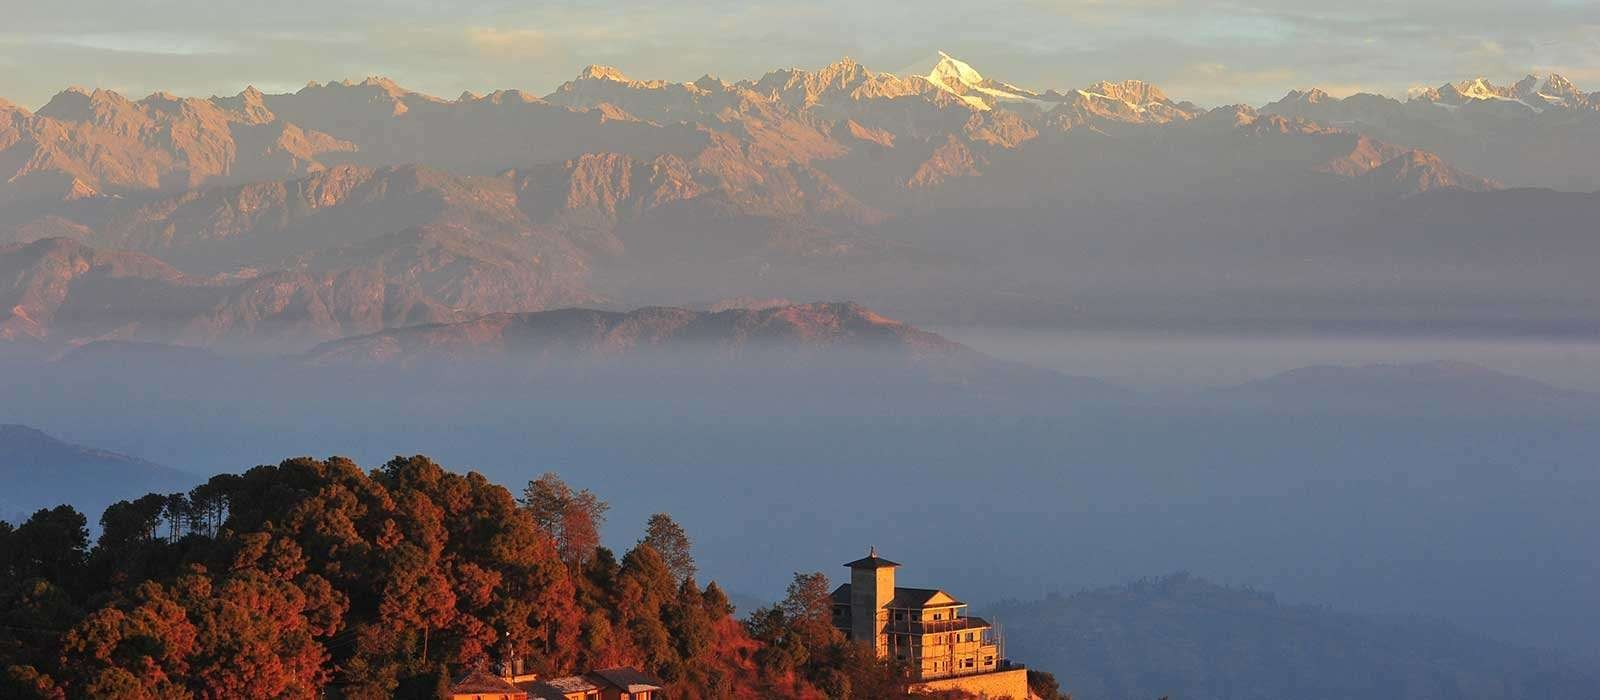 Nagarkot Changunaryan Hiking